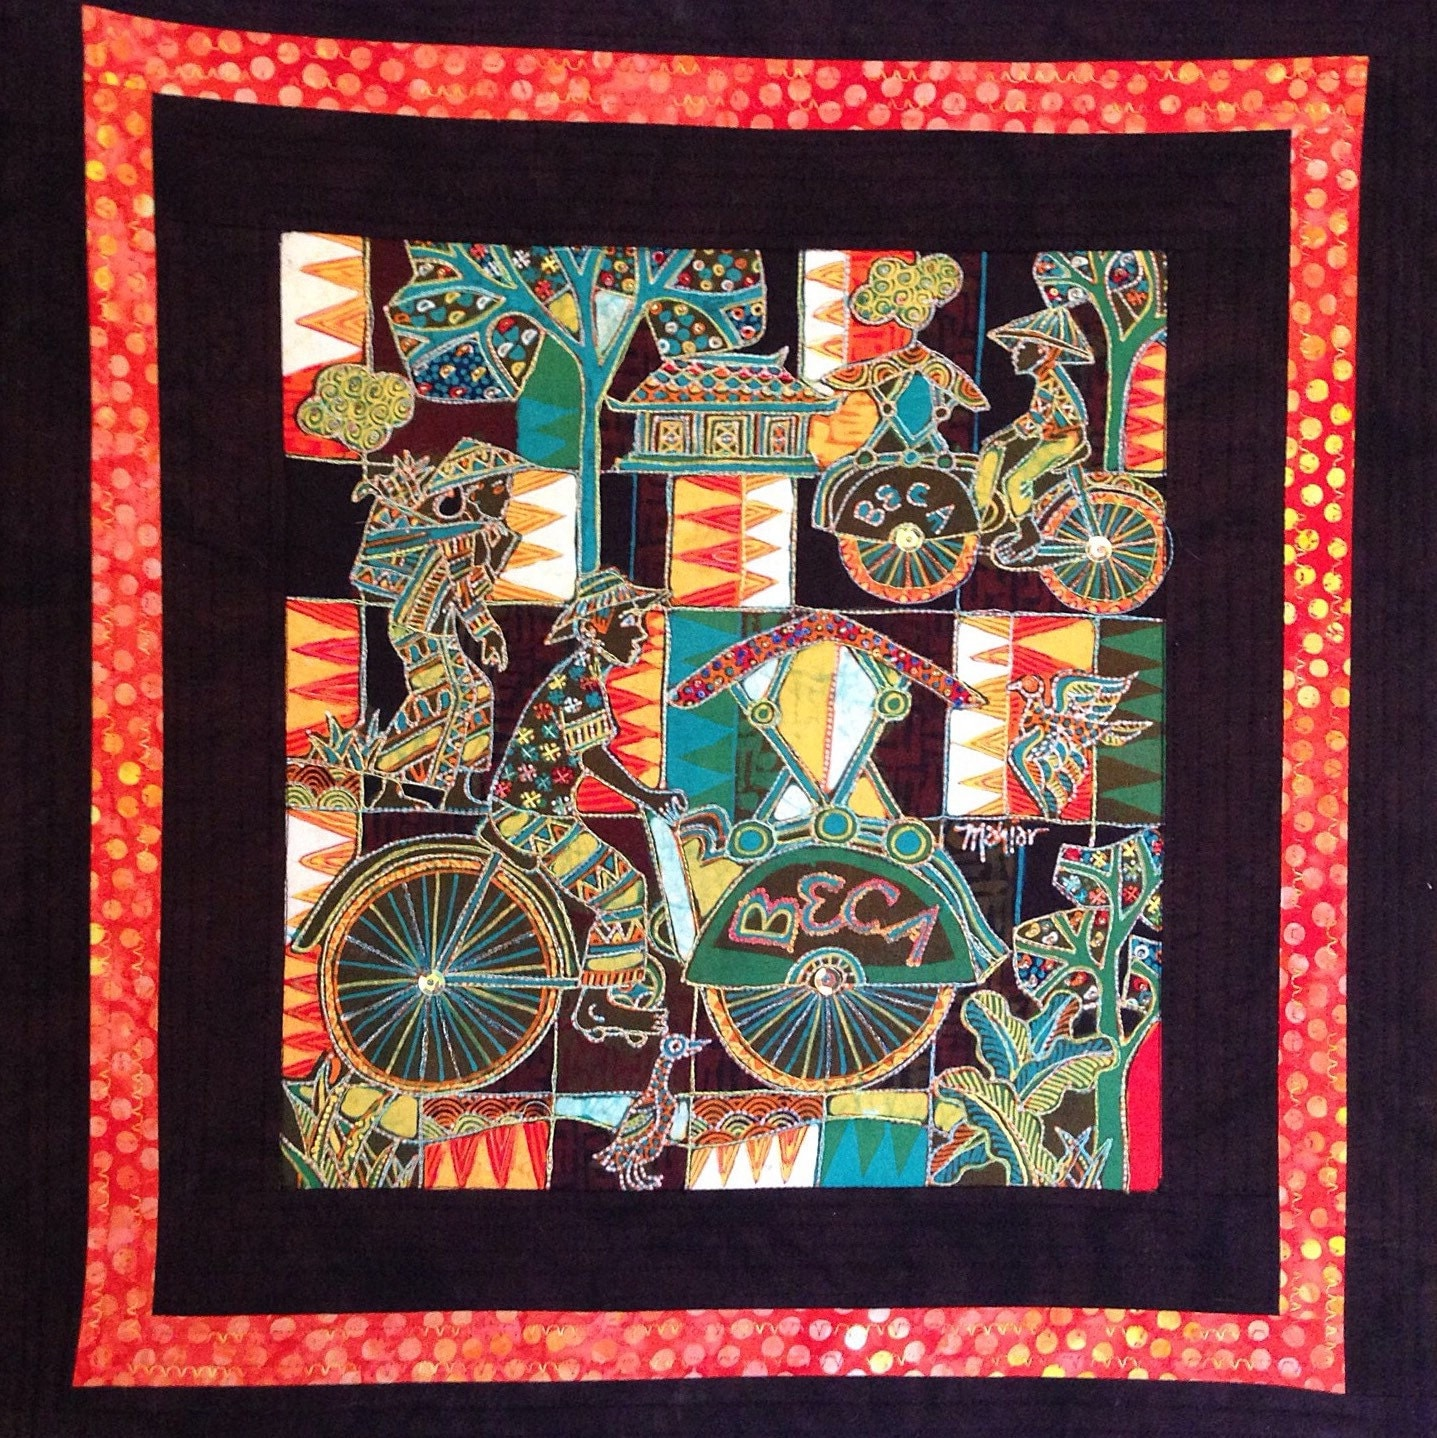 Updates from stitchesnquilts on etsy